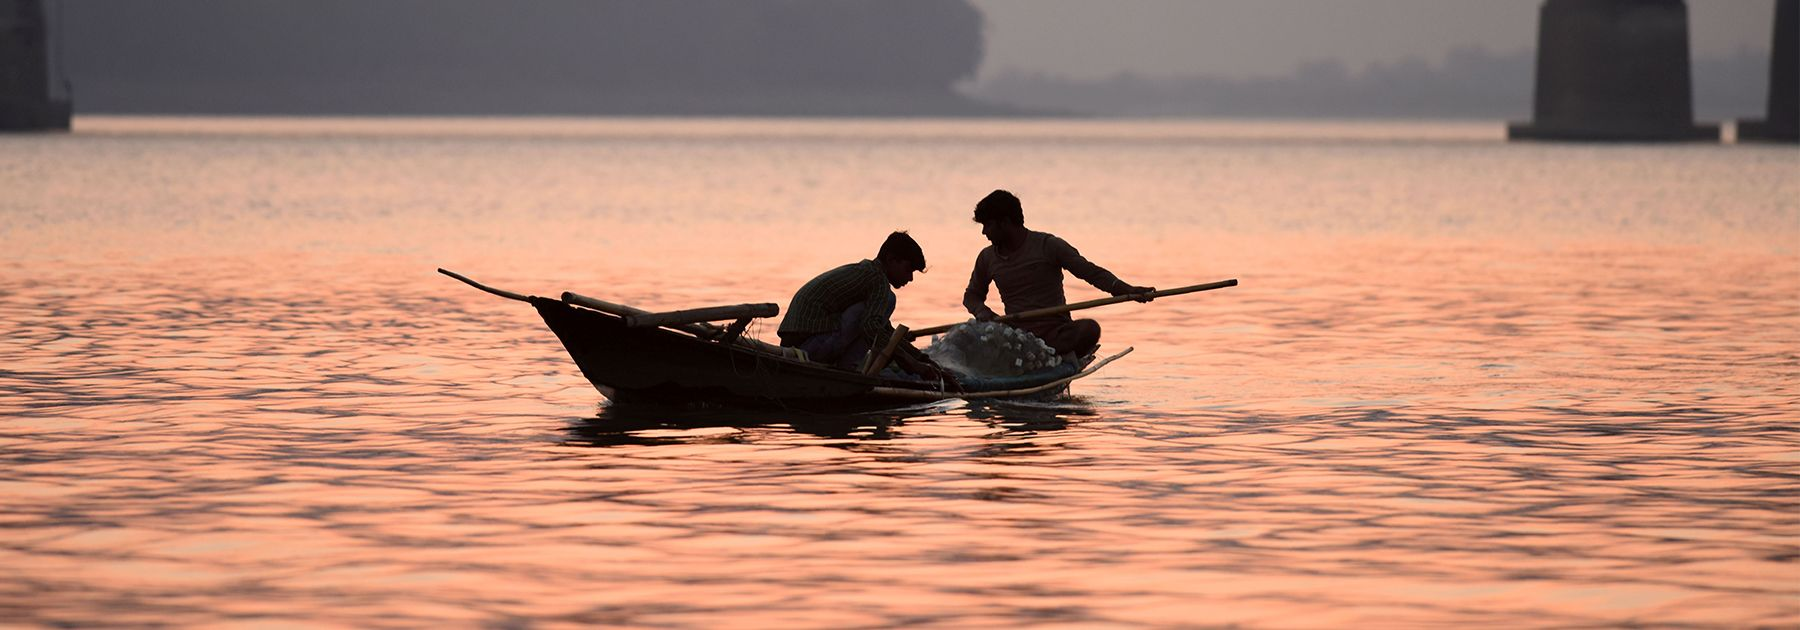 Fishermen paddle their boats back after fishing in the Brahmaputra River on the outskirts of Guwahati. (BIJU BORO/AFP/Getty Images)